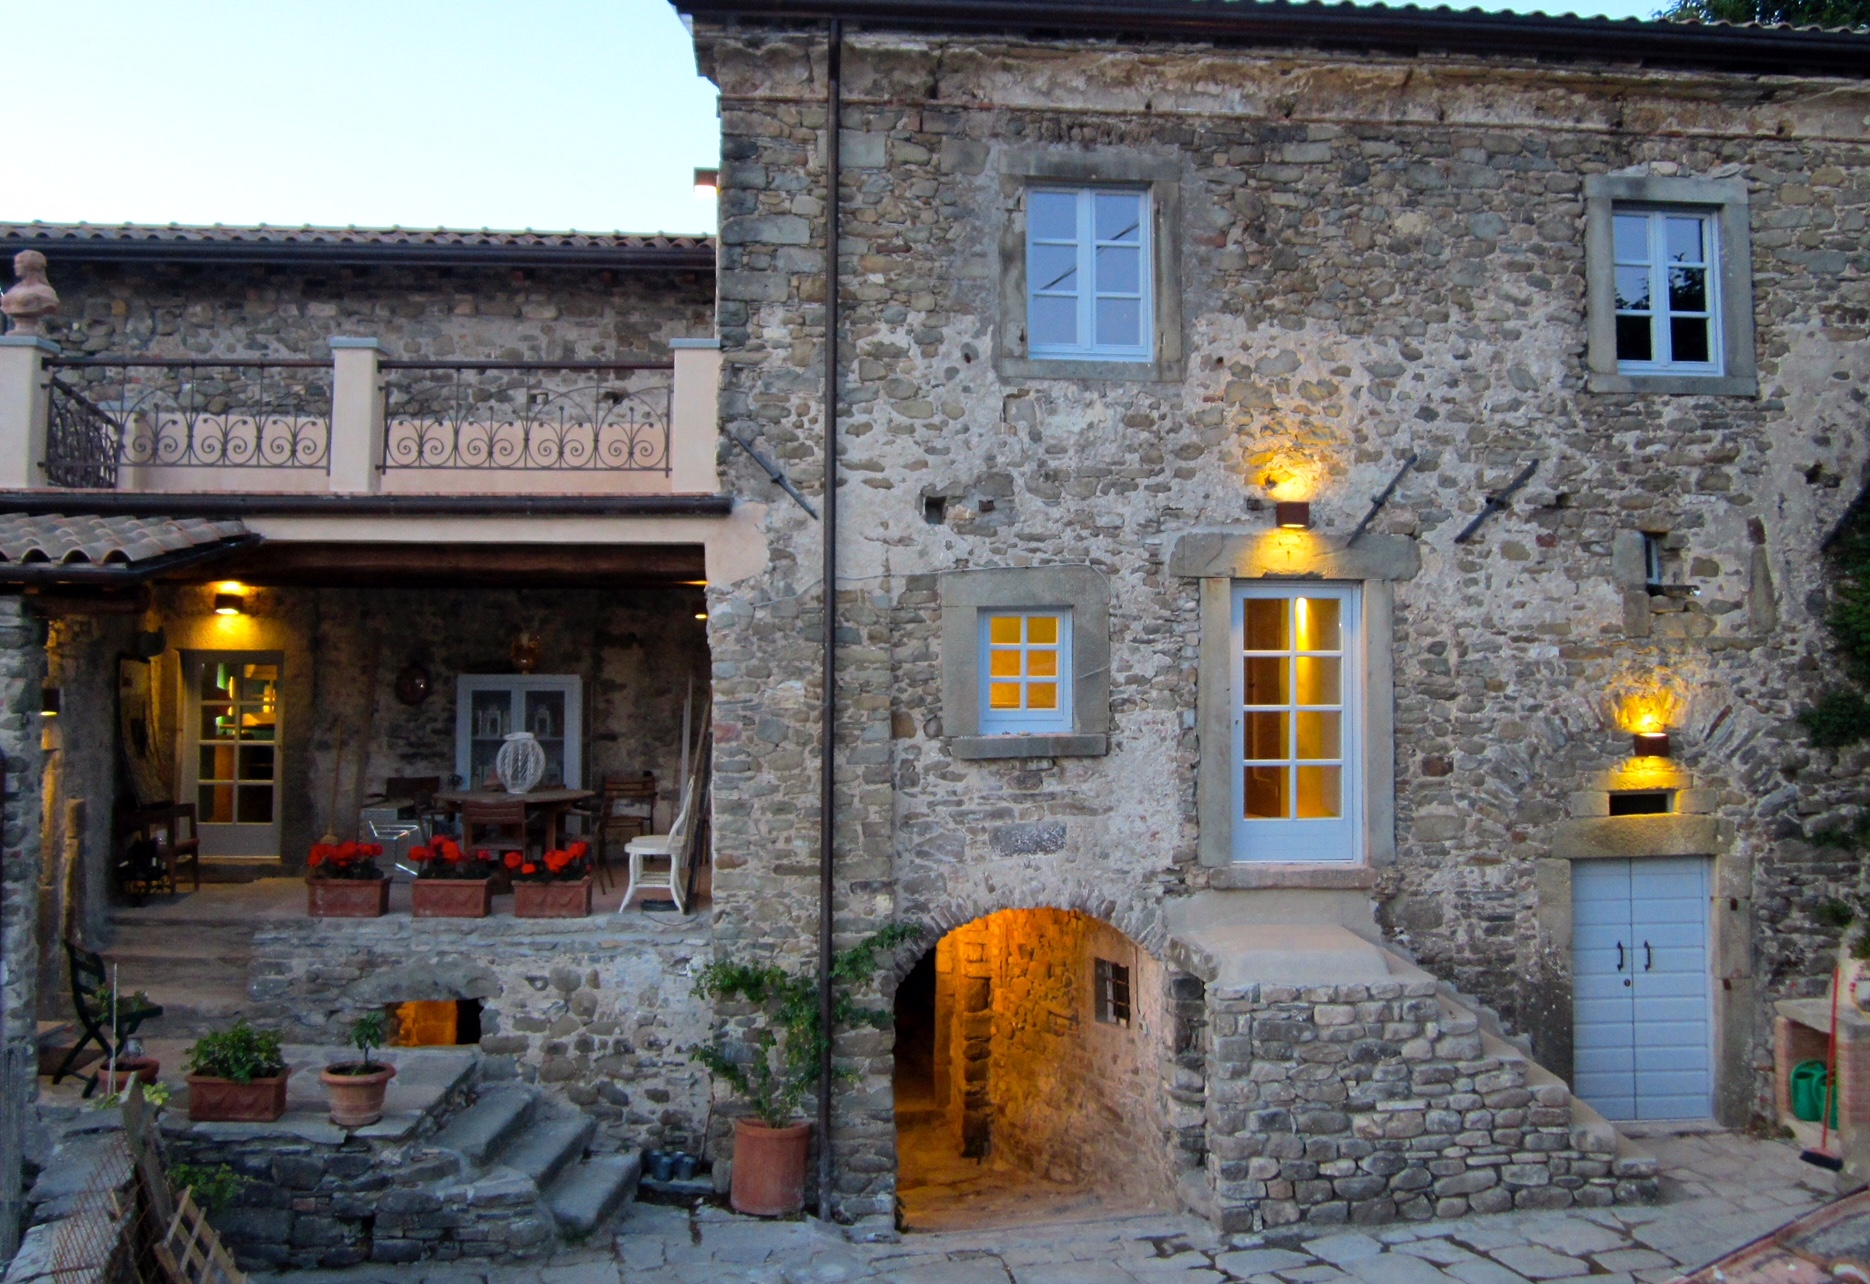 The main house of il Poggiolo from the courtyard at dusk.